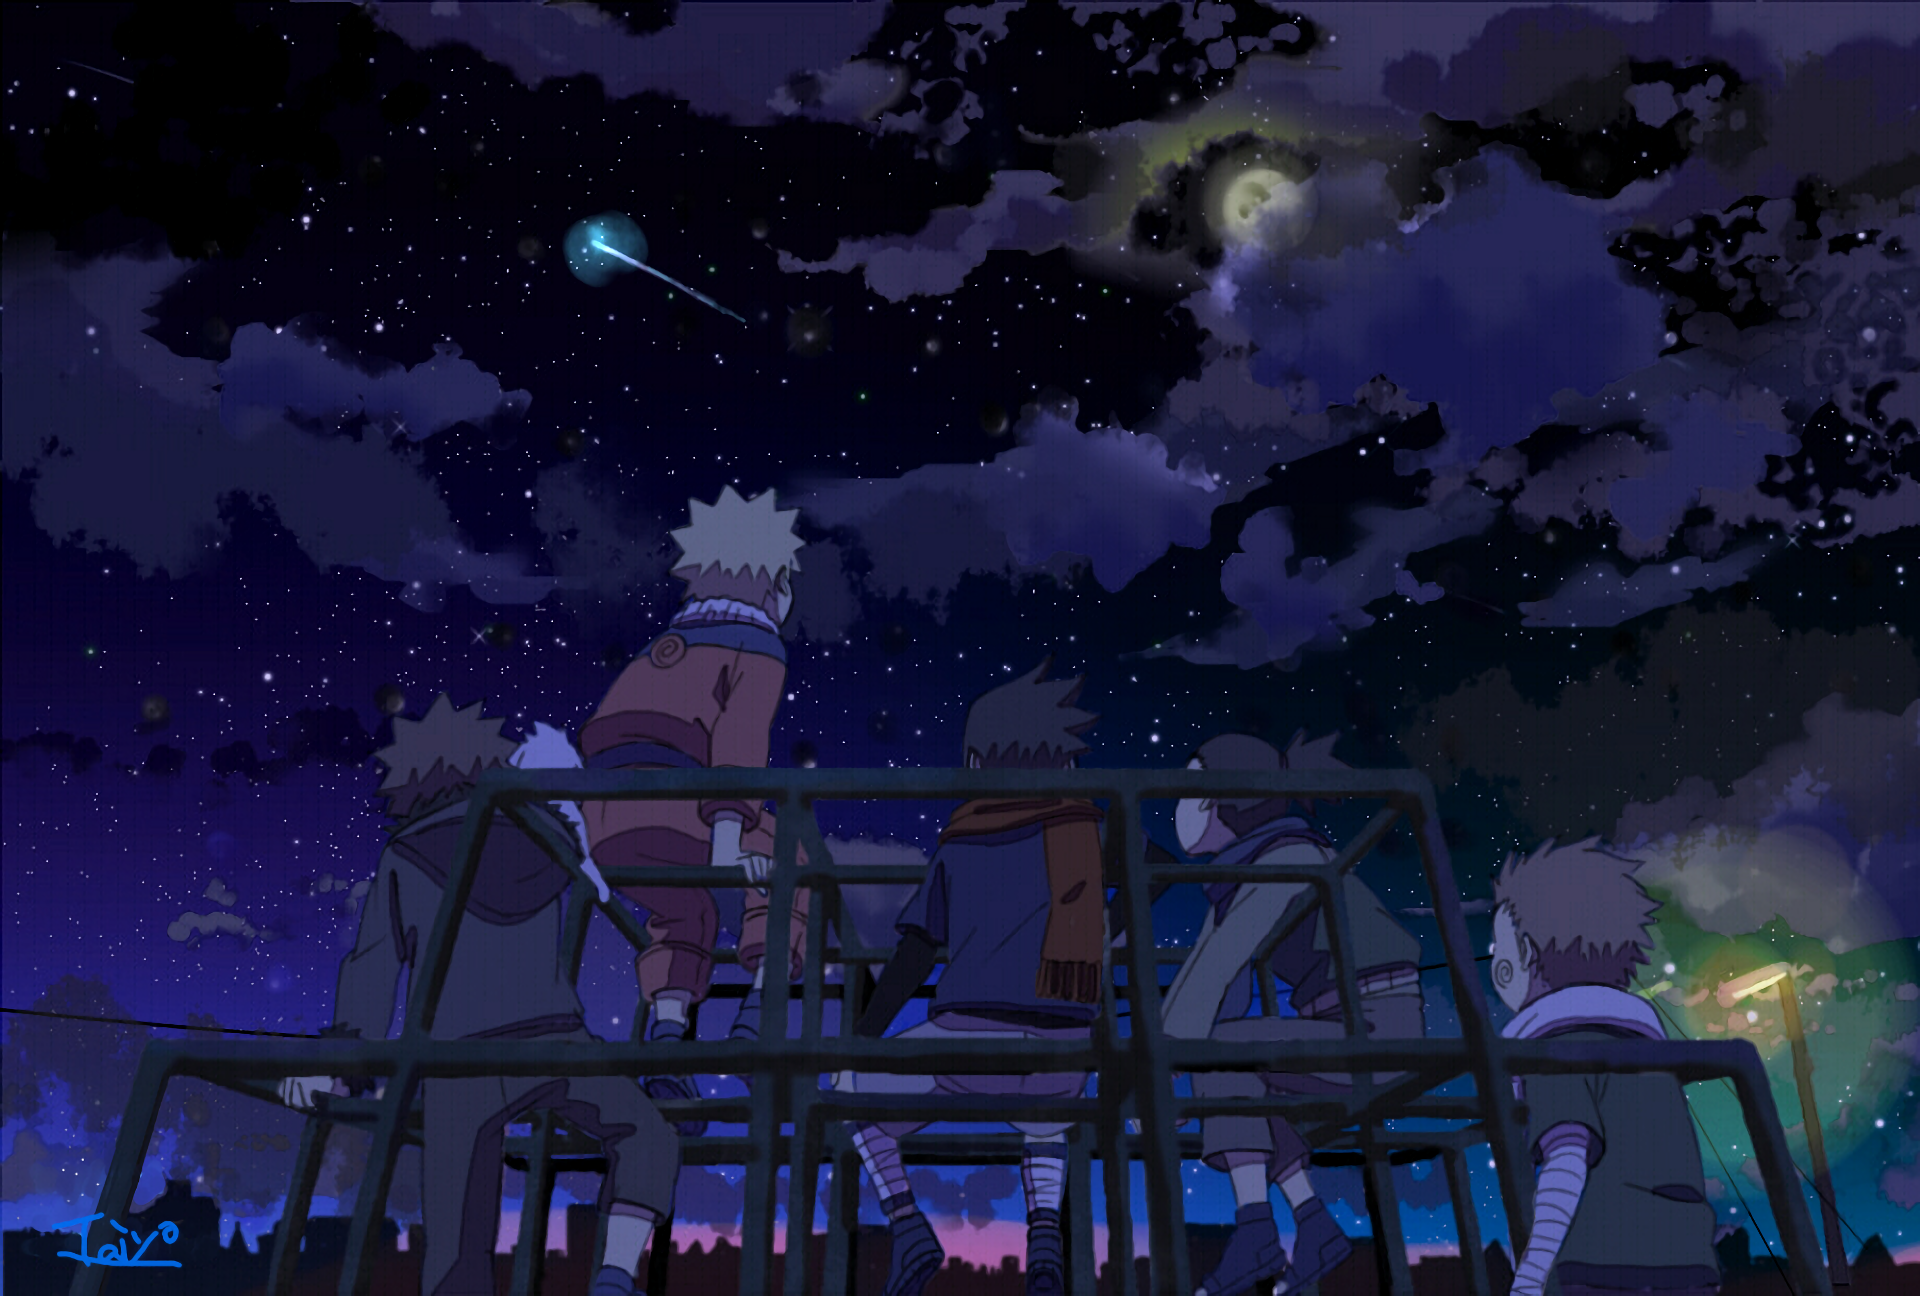 Fantastic Wallpaper Naruto Night - thumb-1920-744731  Image_46342.png